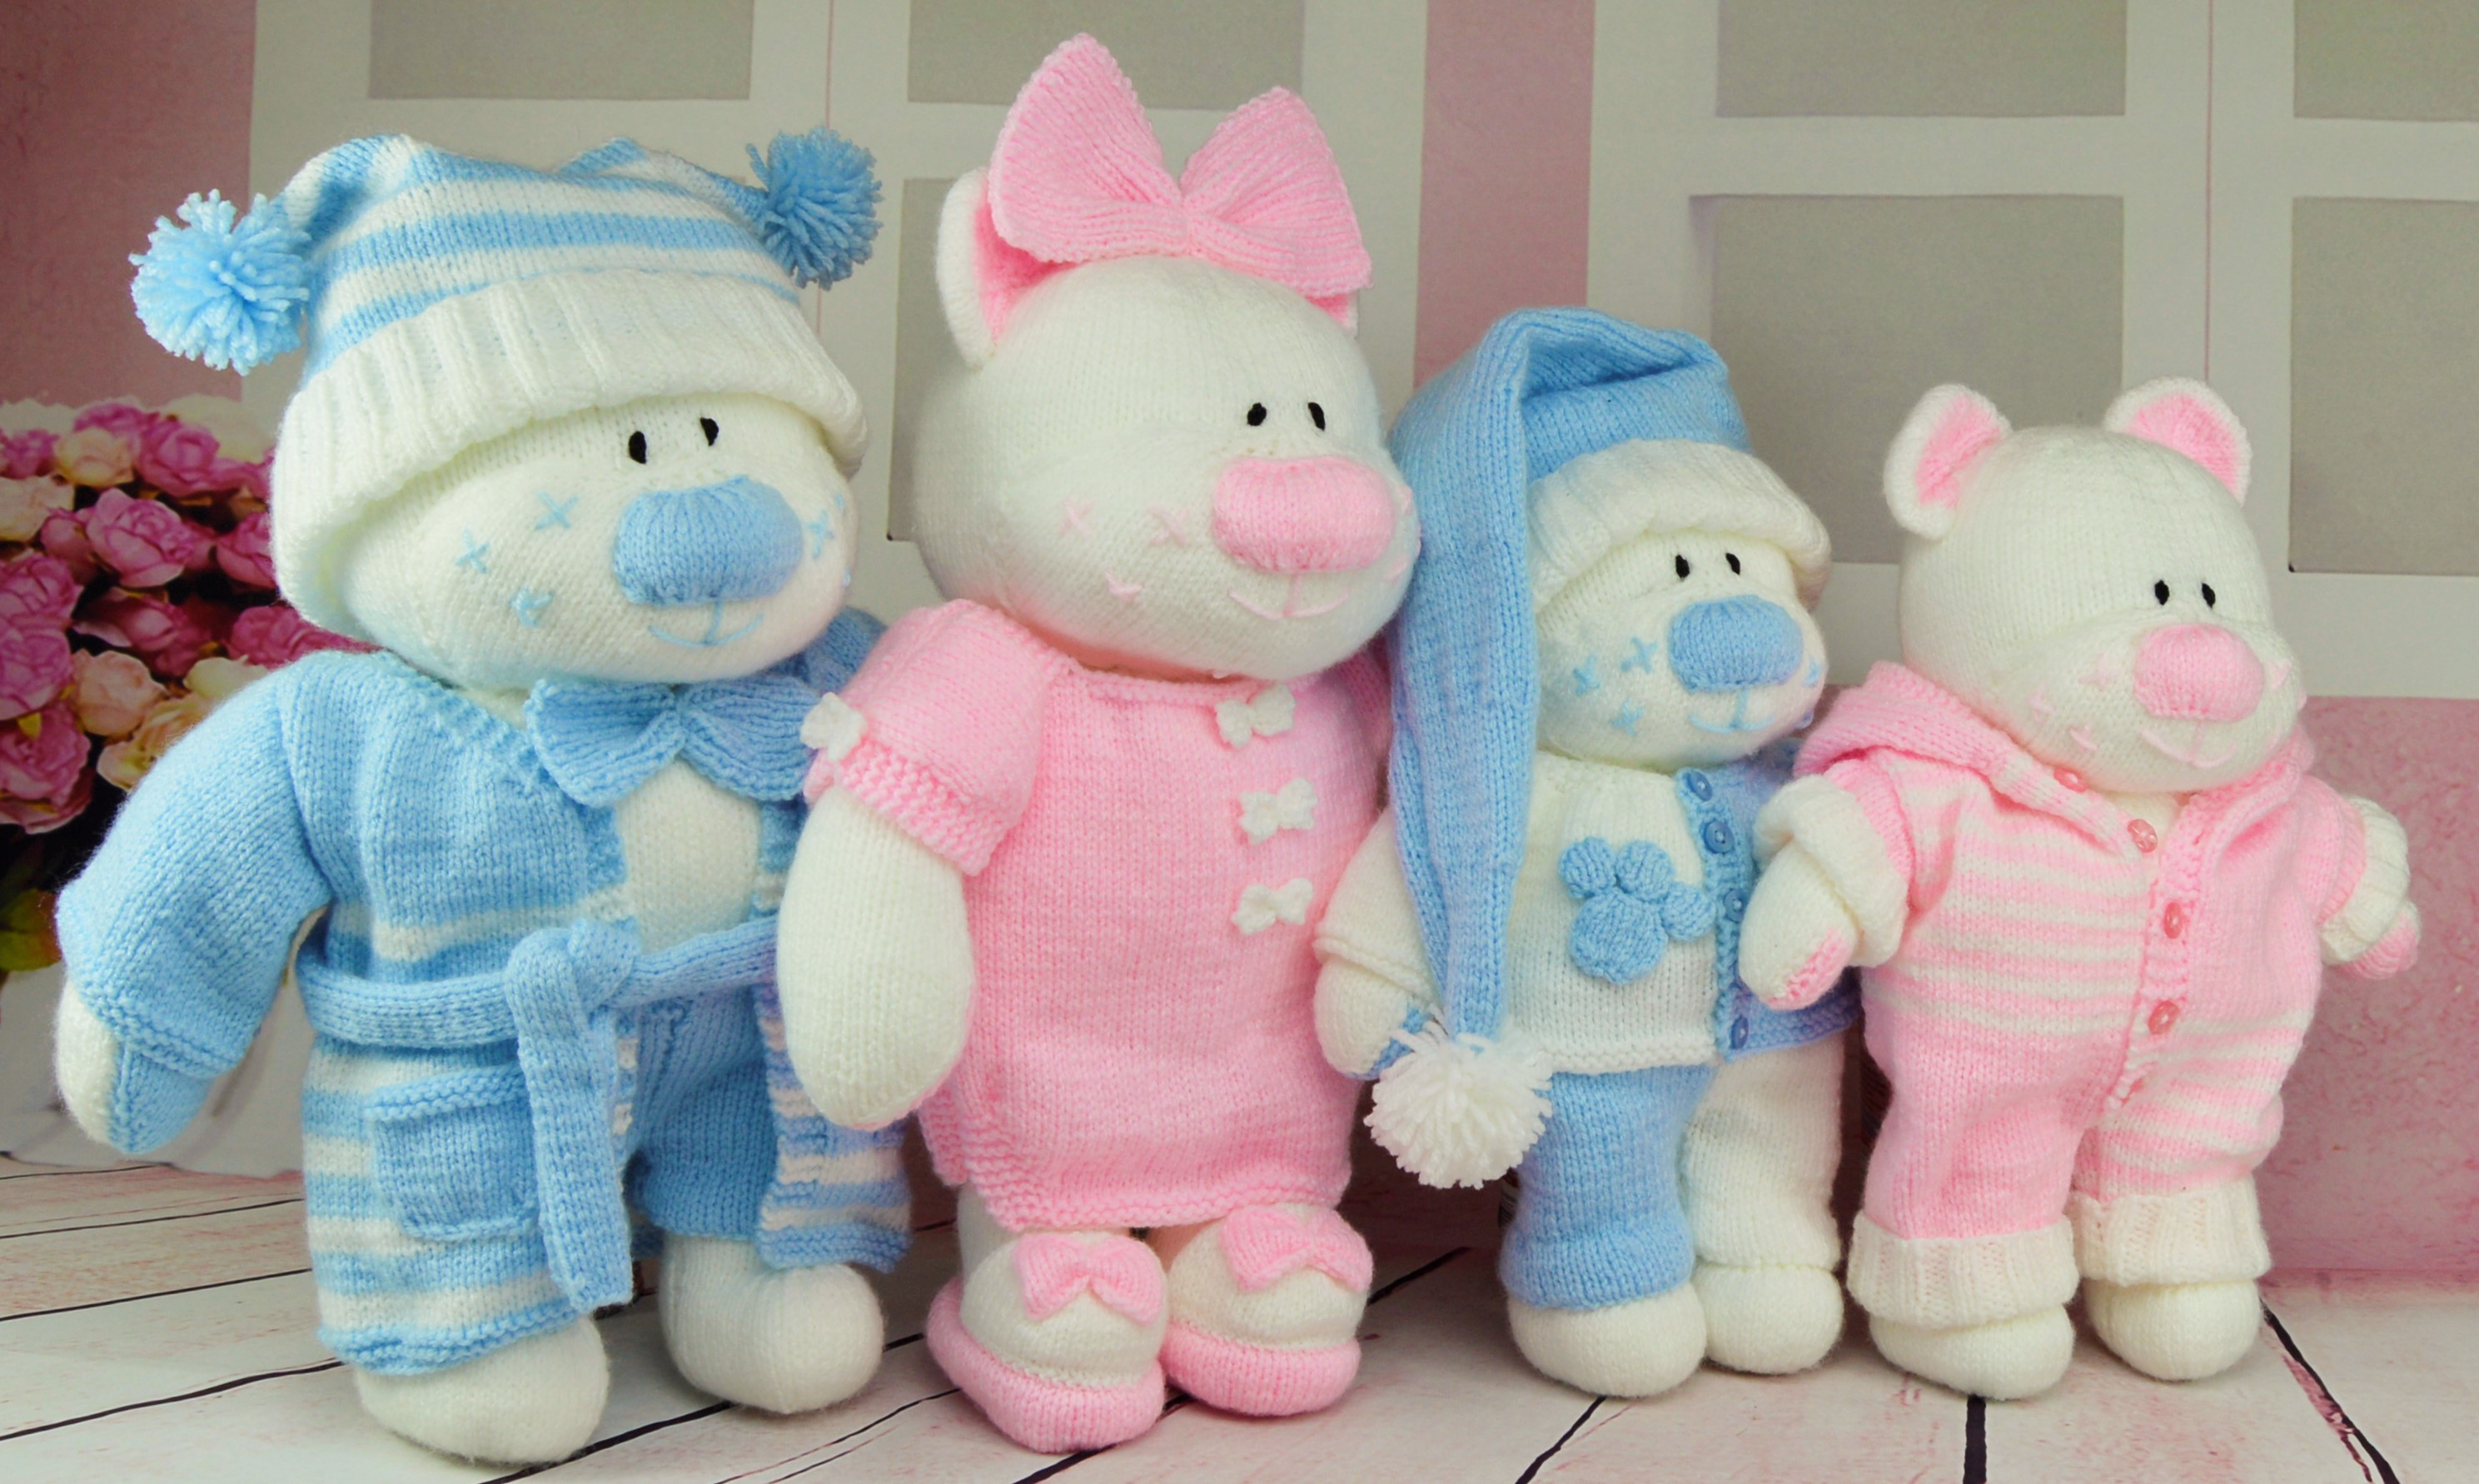 Knitting Patterns For Baby Toys Beau Belle Boo And Bess Sleepy Time Booklet